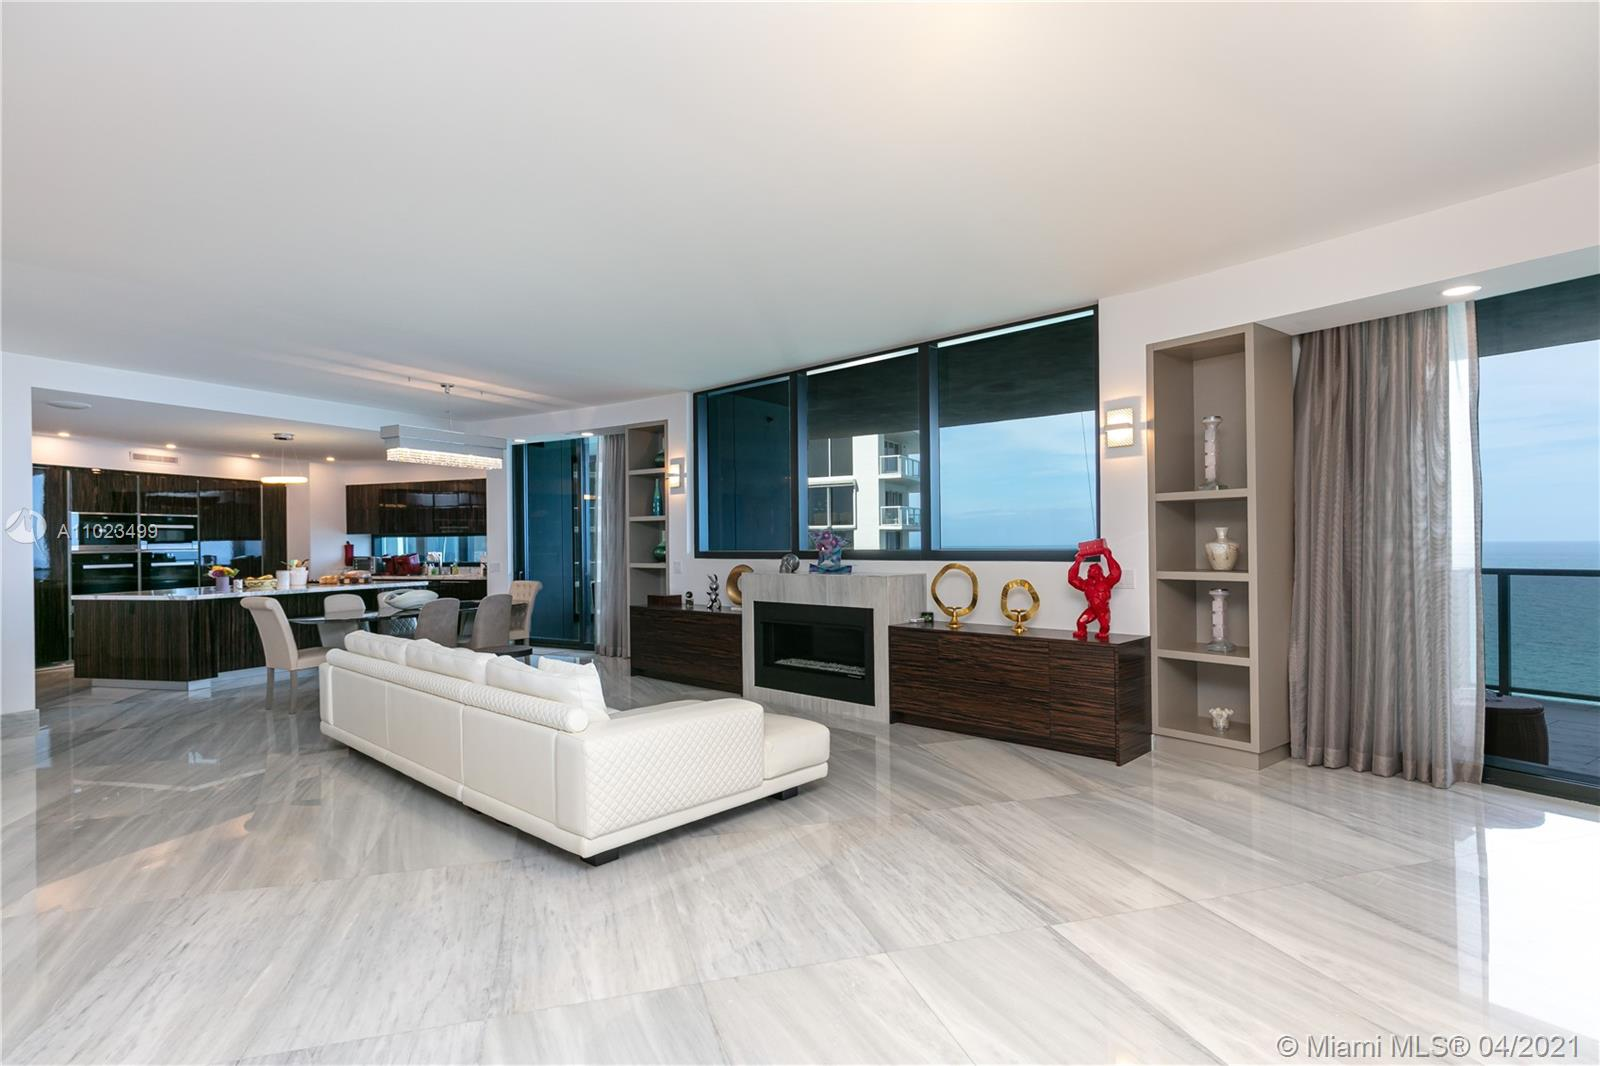 Incredible unit in desirable Porsche Tower residences. The best line in the building, NE corner and the biggest floor plan. 4 full bedrooms, 4 full bathrooms, powder room, 3 living areas, pool on the balcony, elevator to the garage downstairs with 2 cars. Fully furnished with high-end furniture, marble floors. You will be not disappointed. Call today!